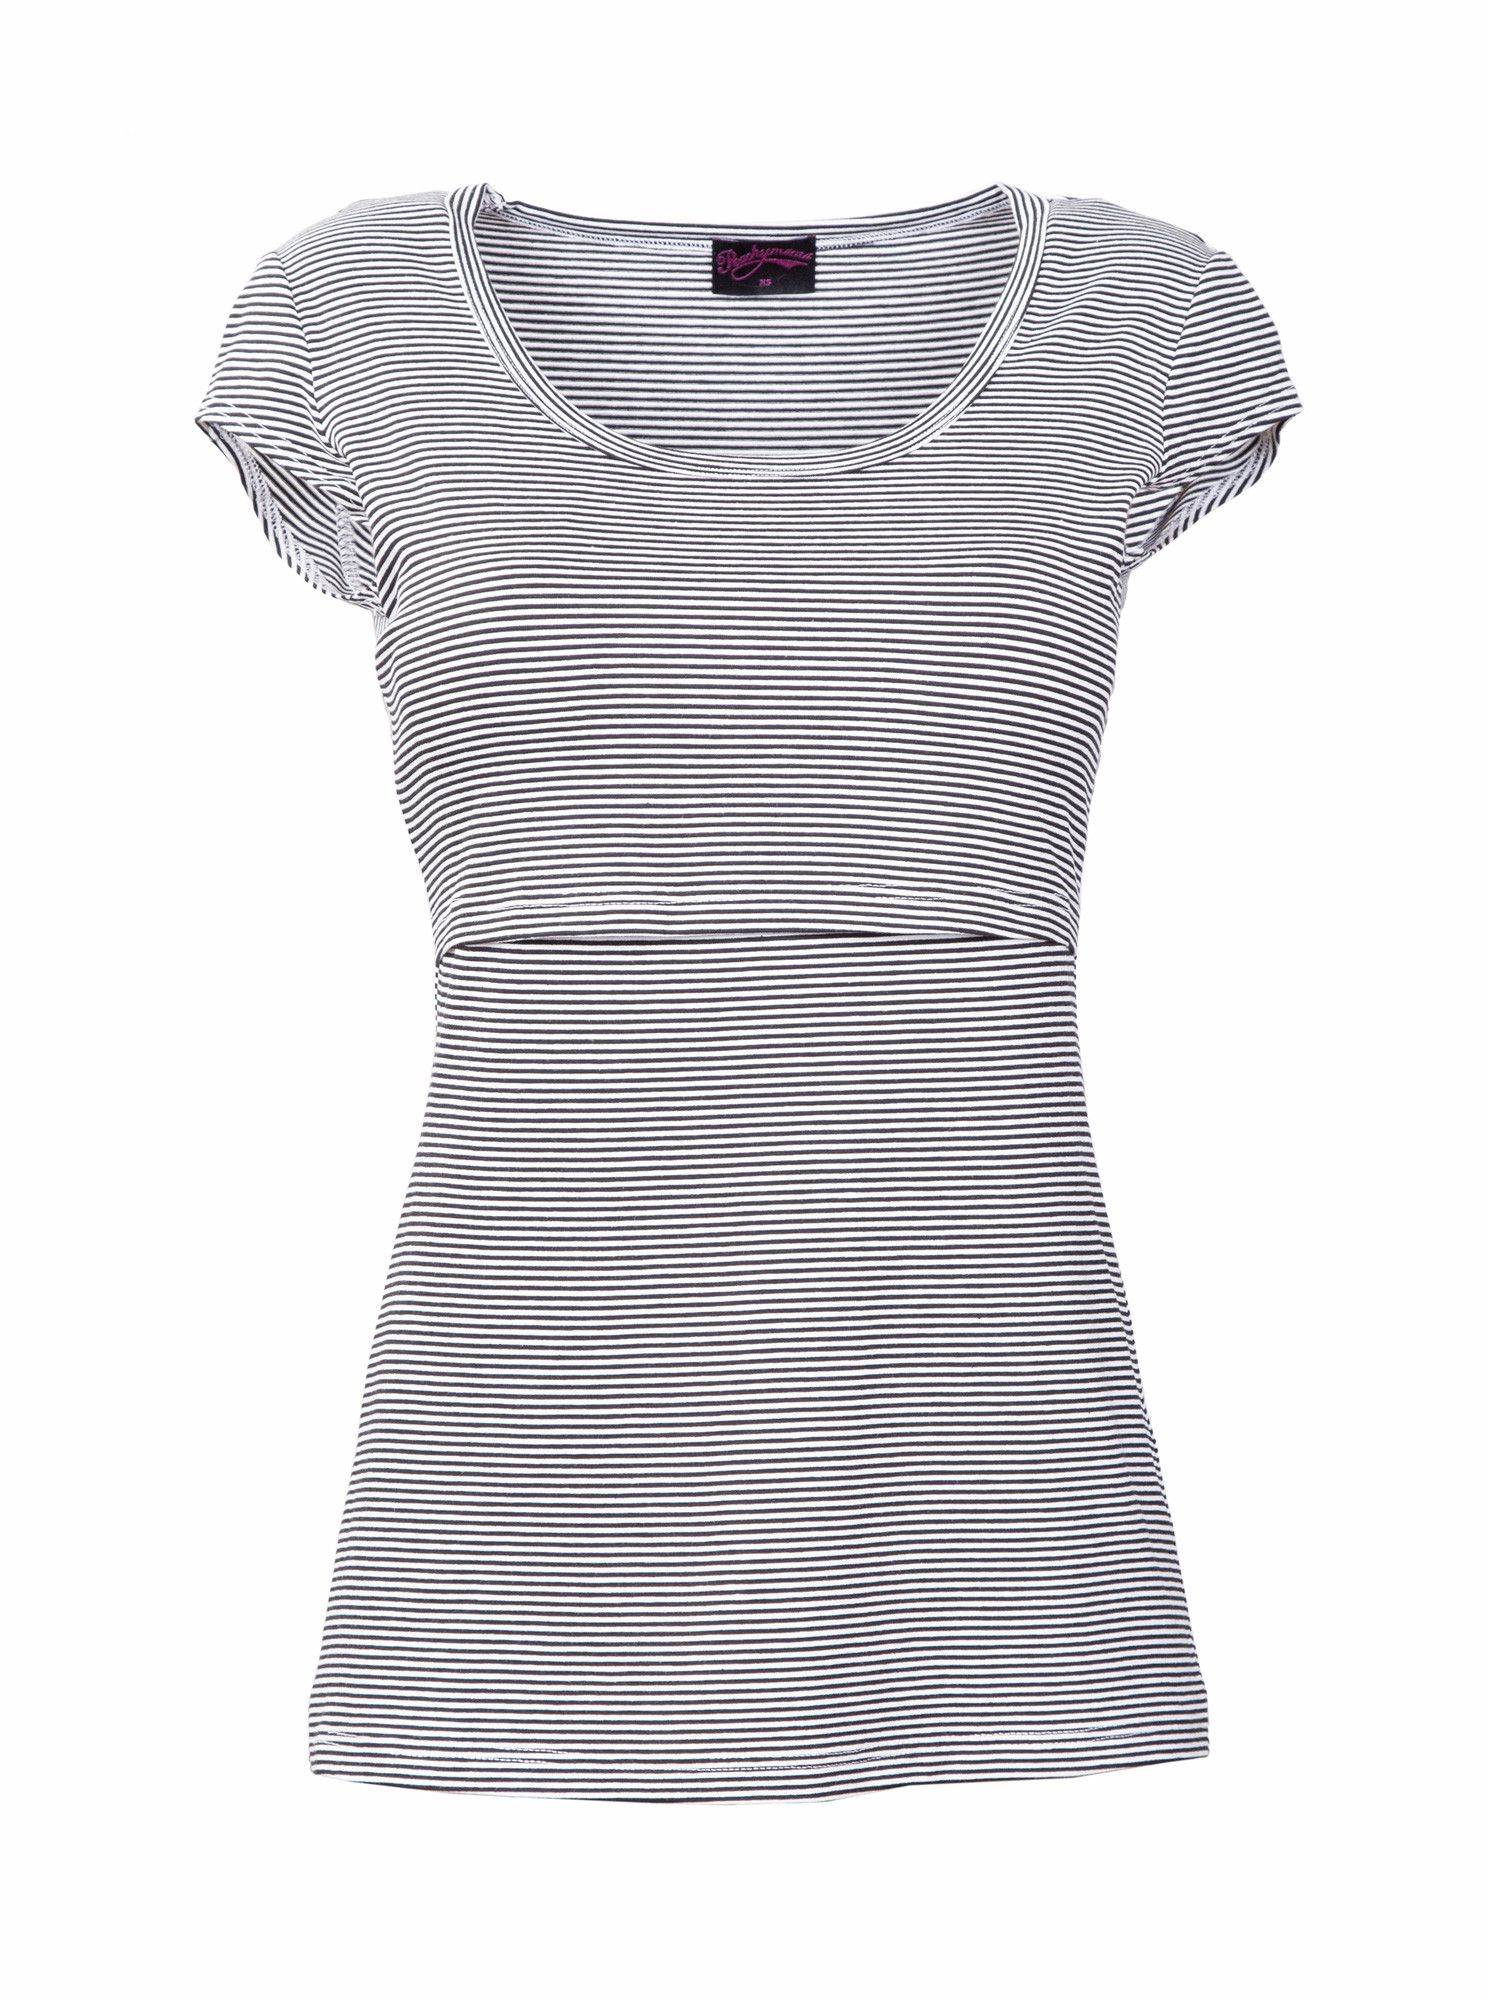 bf3d768e8bc Shapely Chic Short sleeve nursing top with thin black and white stripes.  Stay cool in the warmer seasons wearing this top with jeans